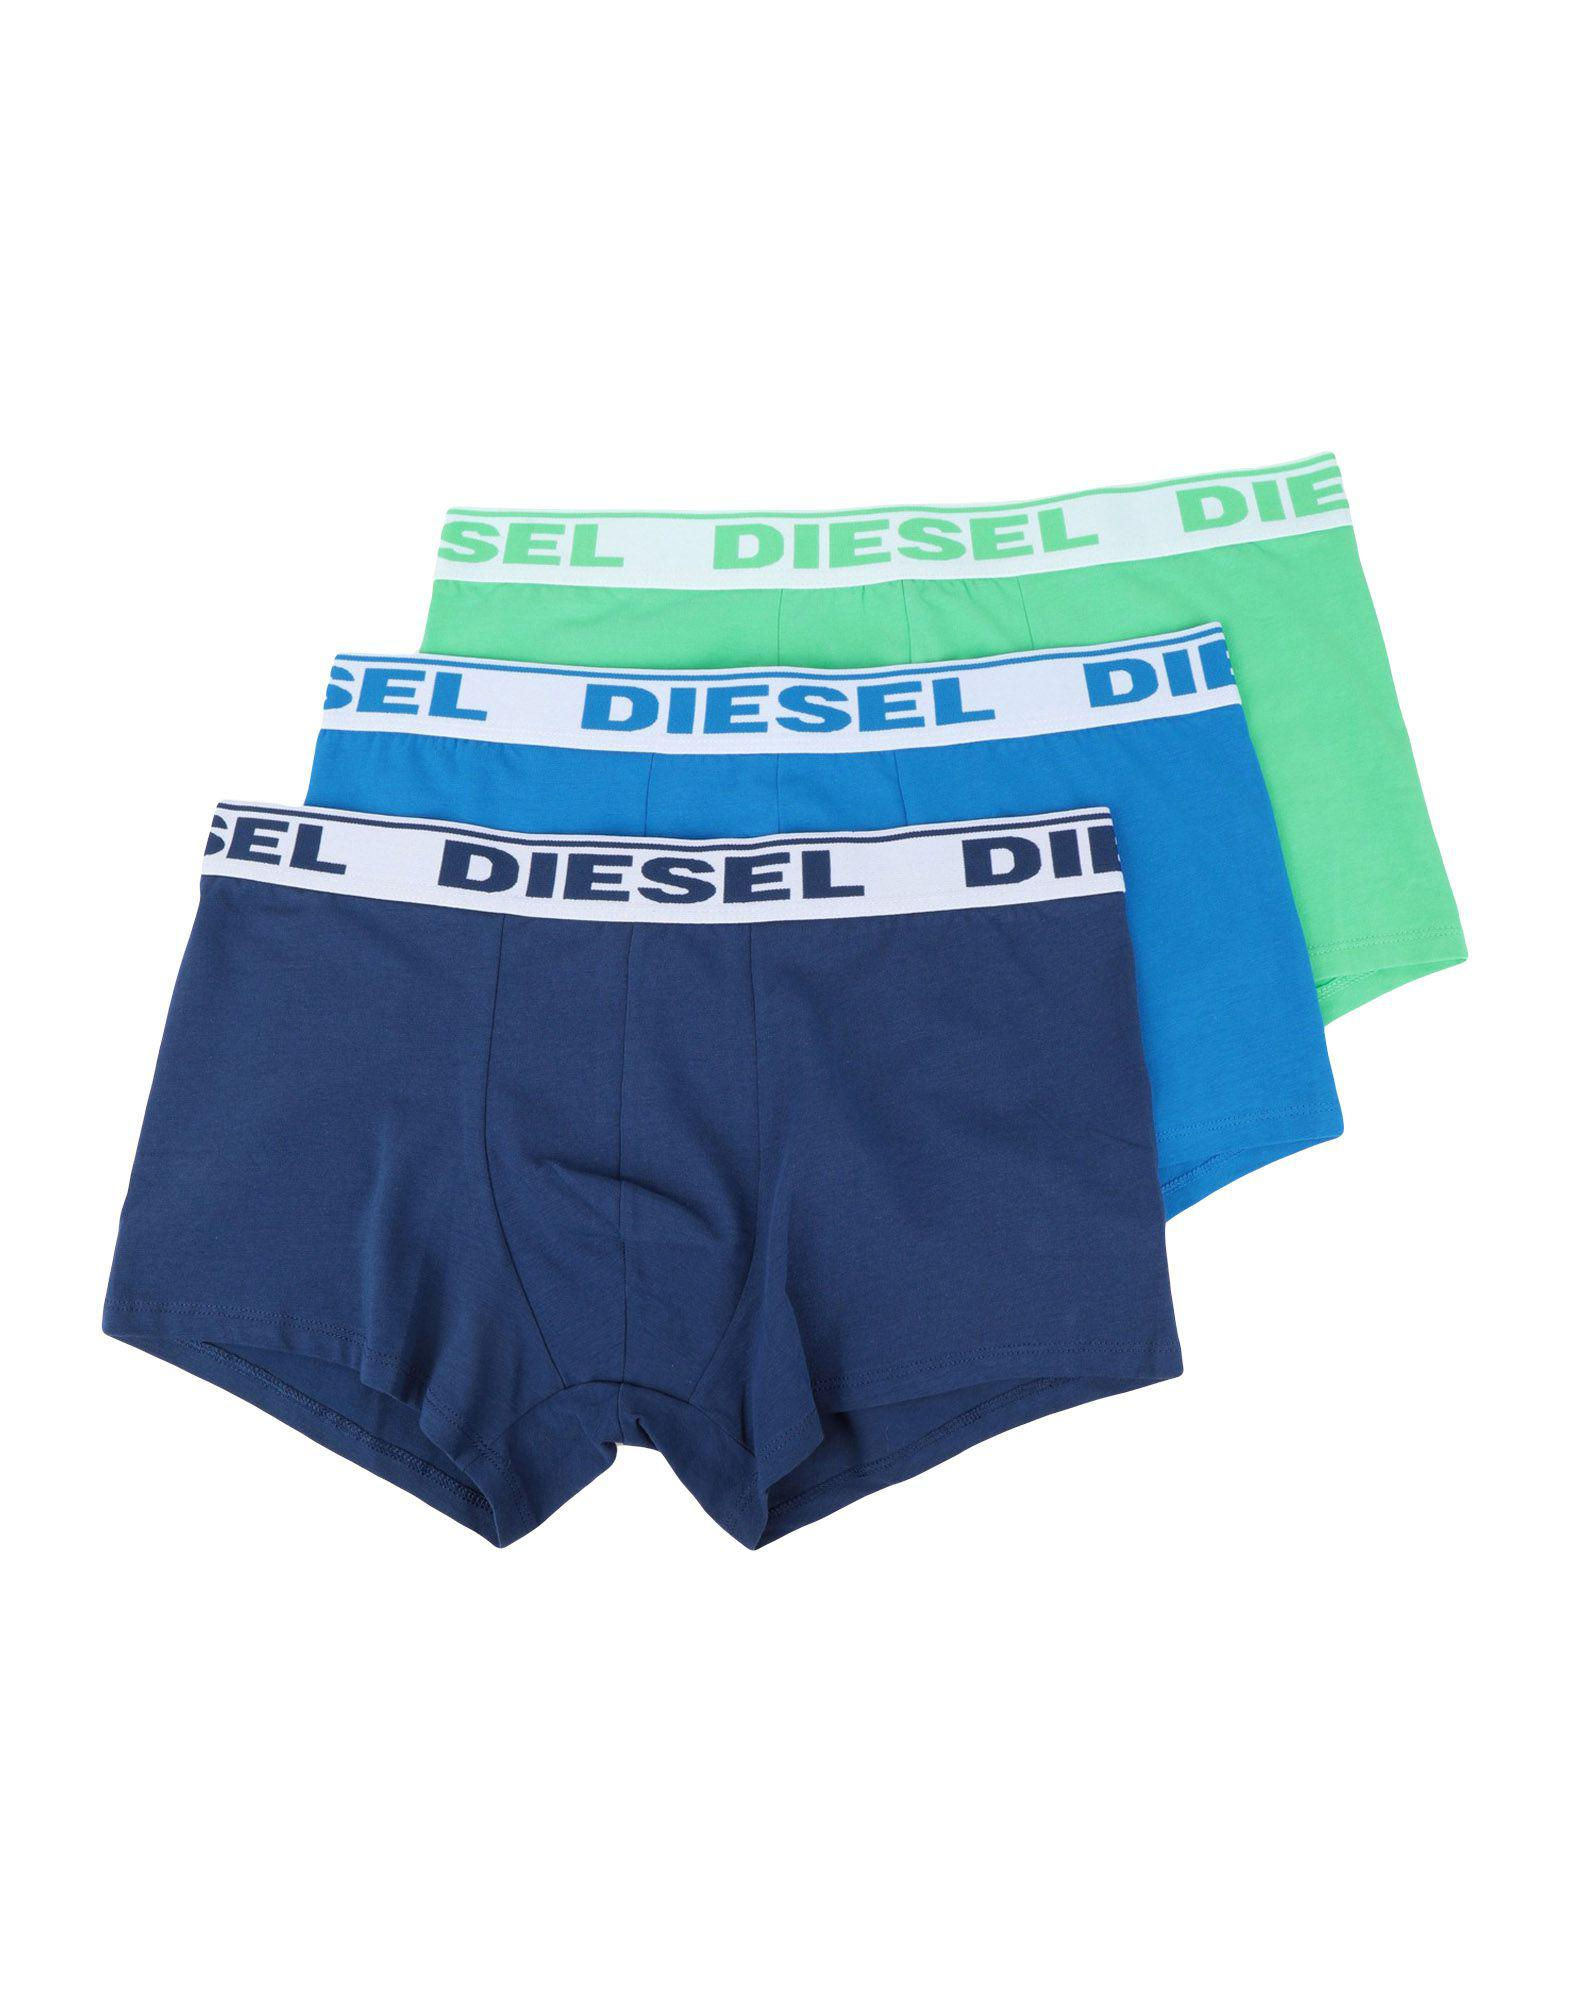 50a10b2c8 DIESEL Boxer in Blue for Men - Lyst